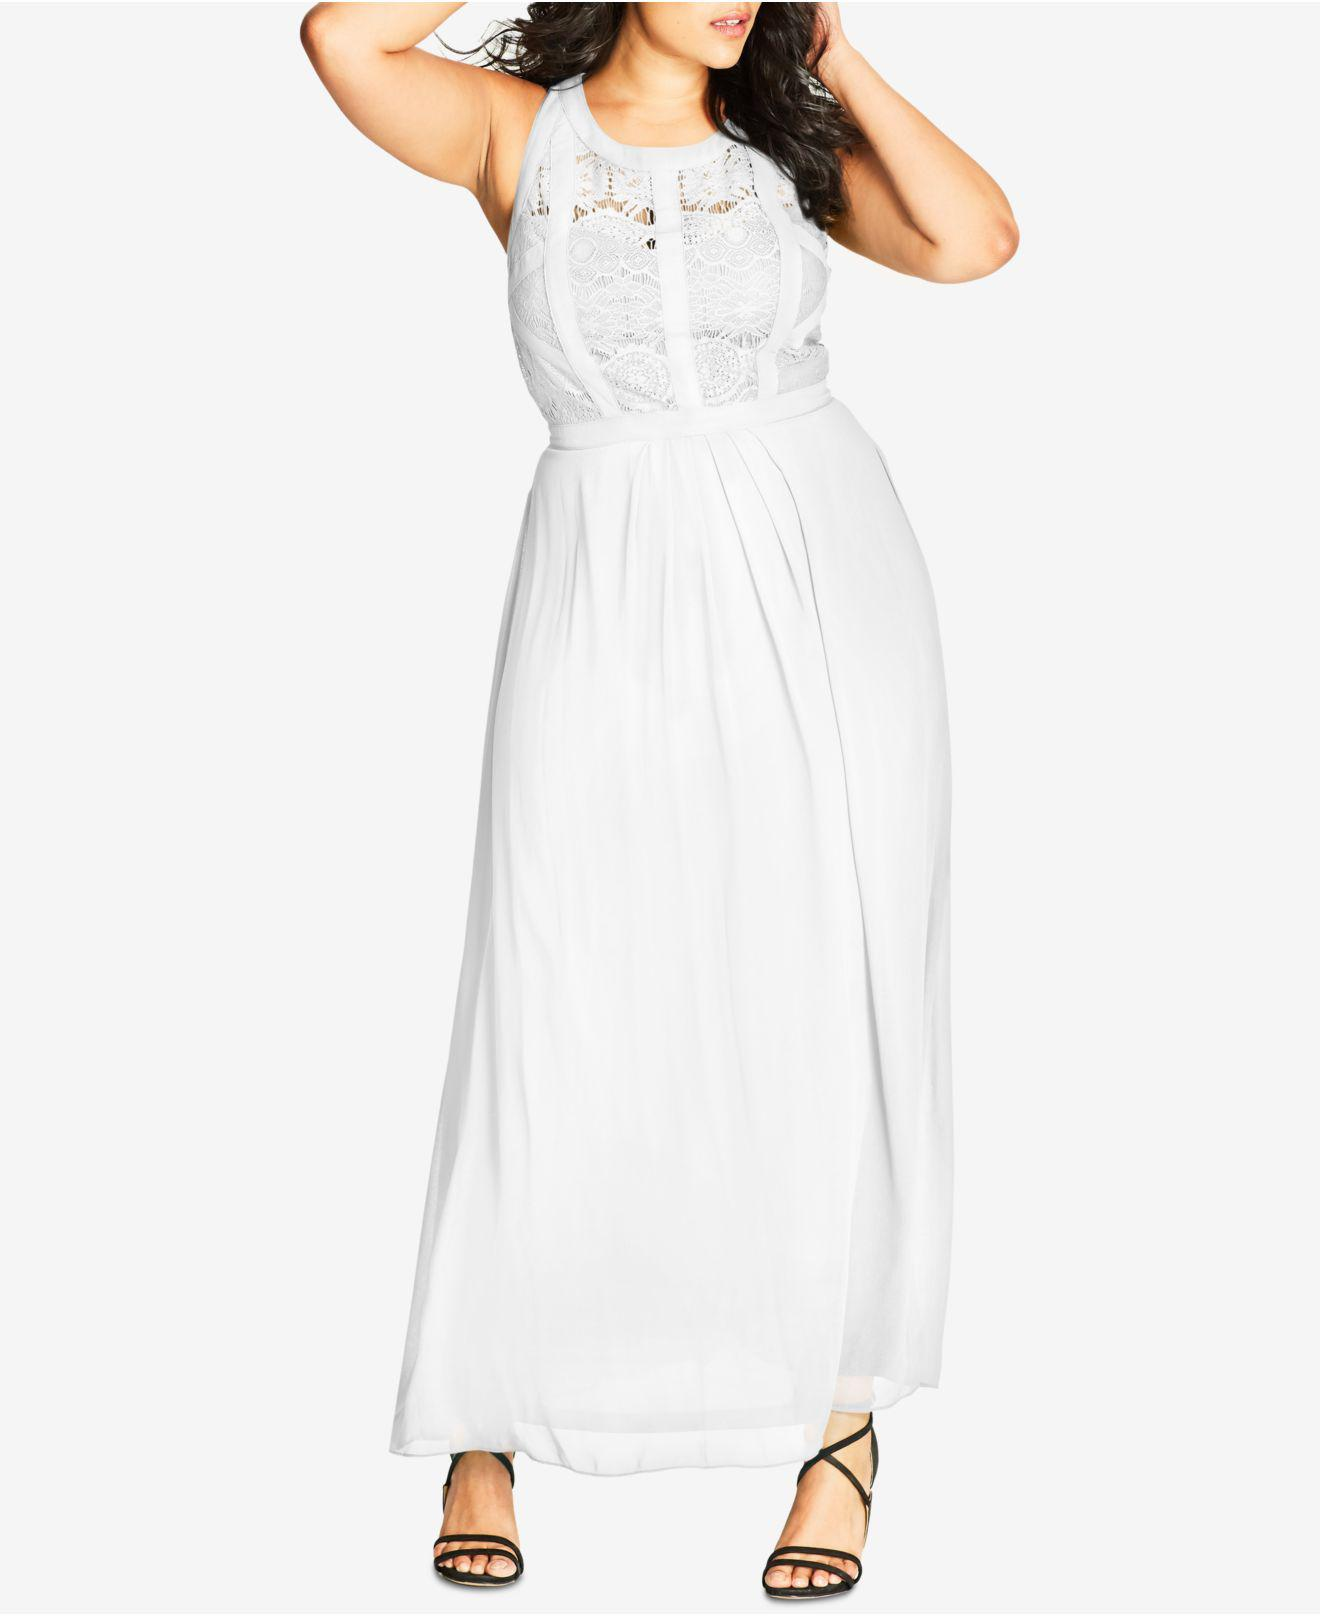 59a41a6dd4f8 City Chic Plus Size Sleeveless Maxi Dress in White - Lyst